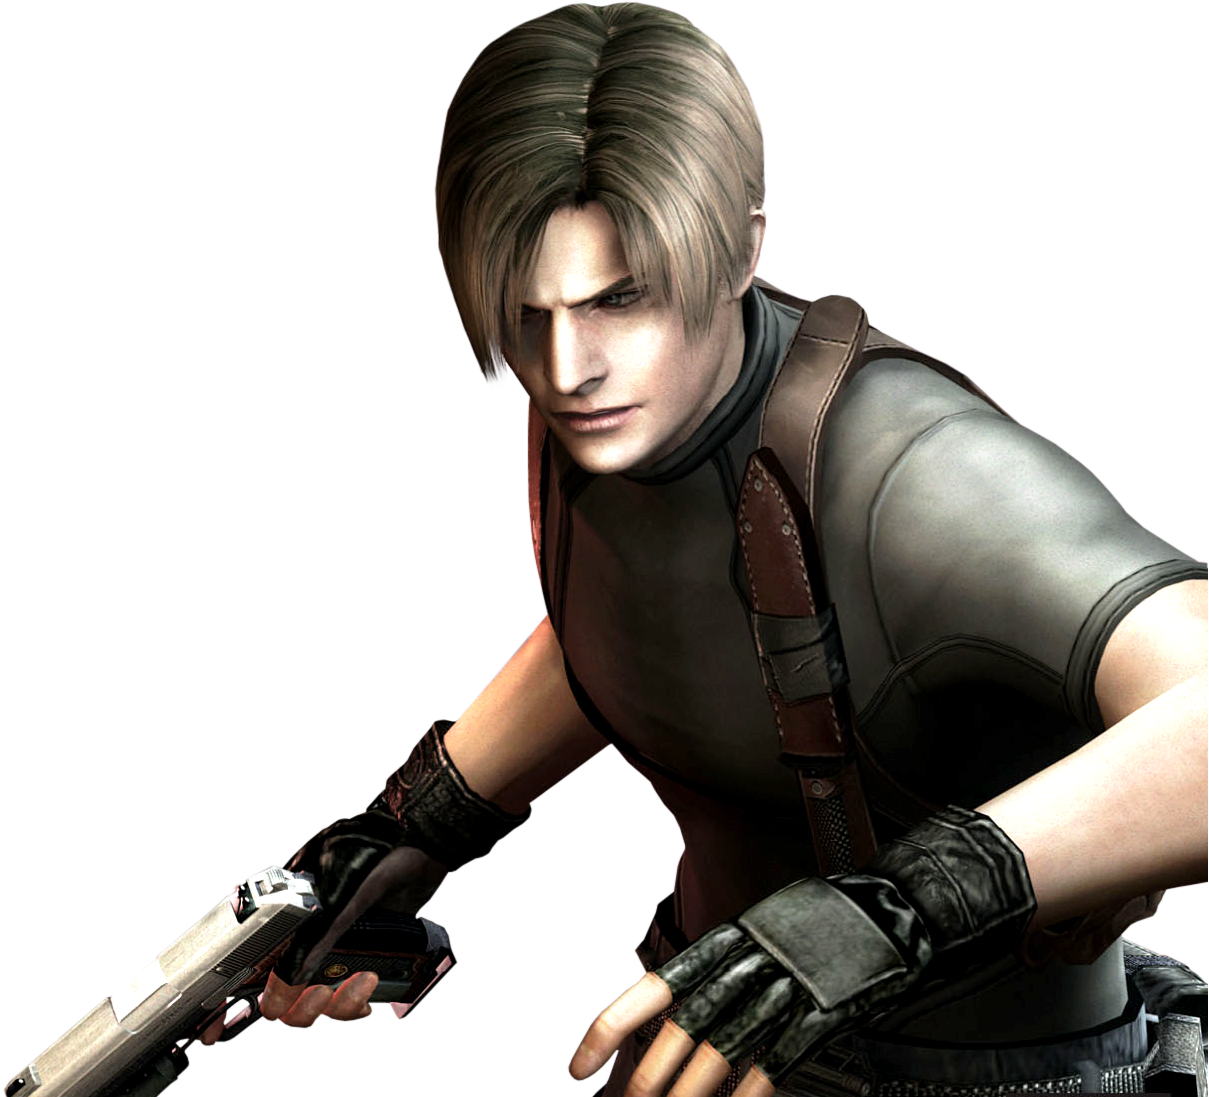 Resident Evil 4 Images Bitores Hd Wallpaper And Background